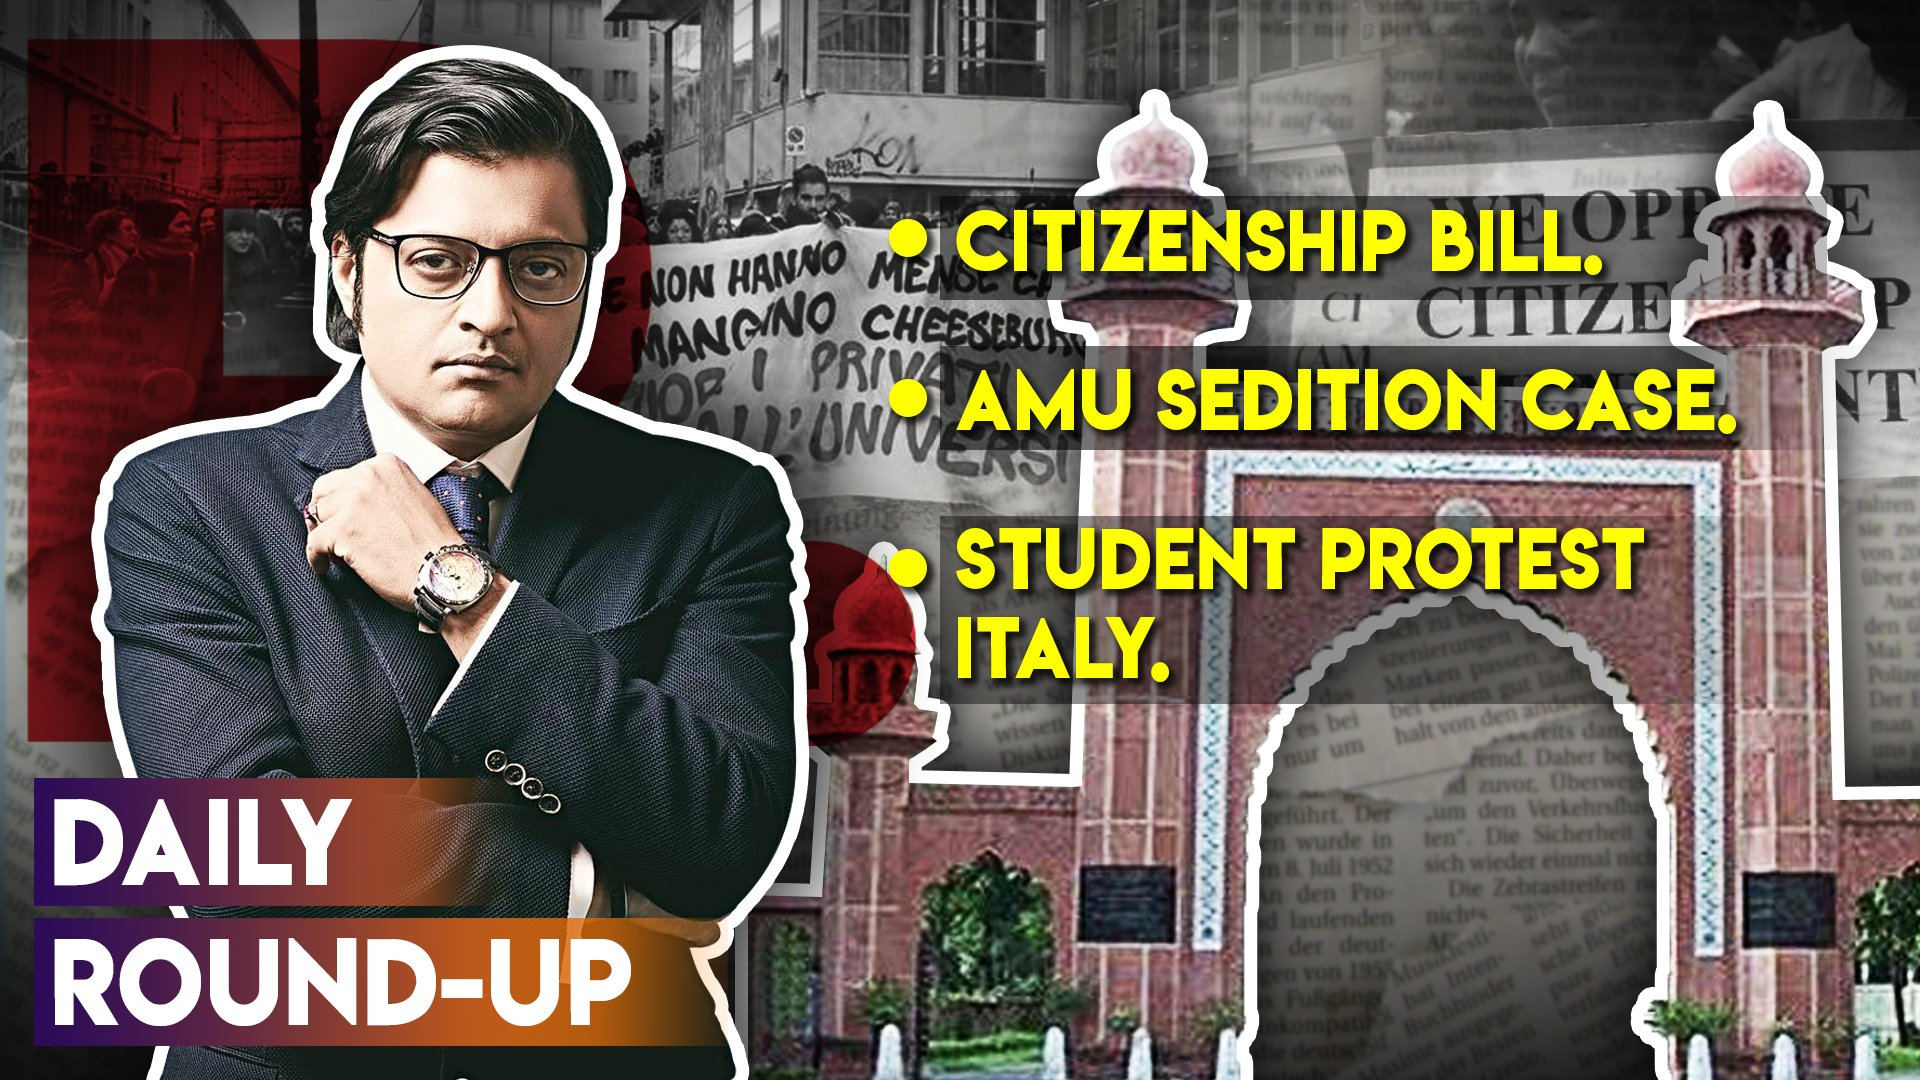 Daily Round-up Ep. 46 – Citizenship Amendment Bill Lapses in Rajya Sabha, Sedition Charges Against AMU Students, Students' Protest in Italy